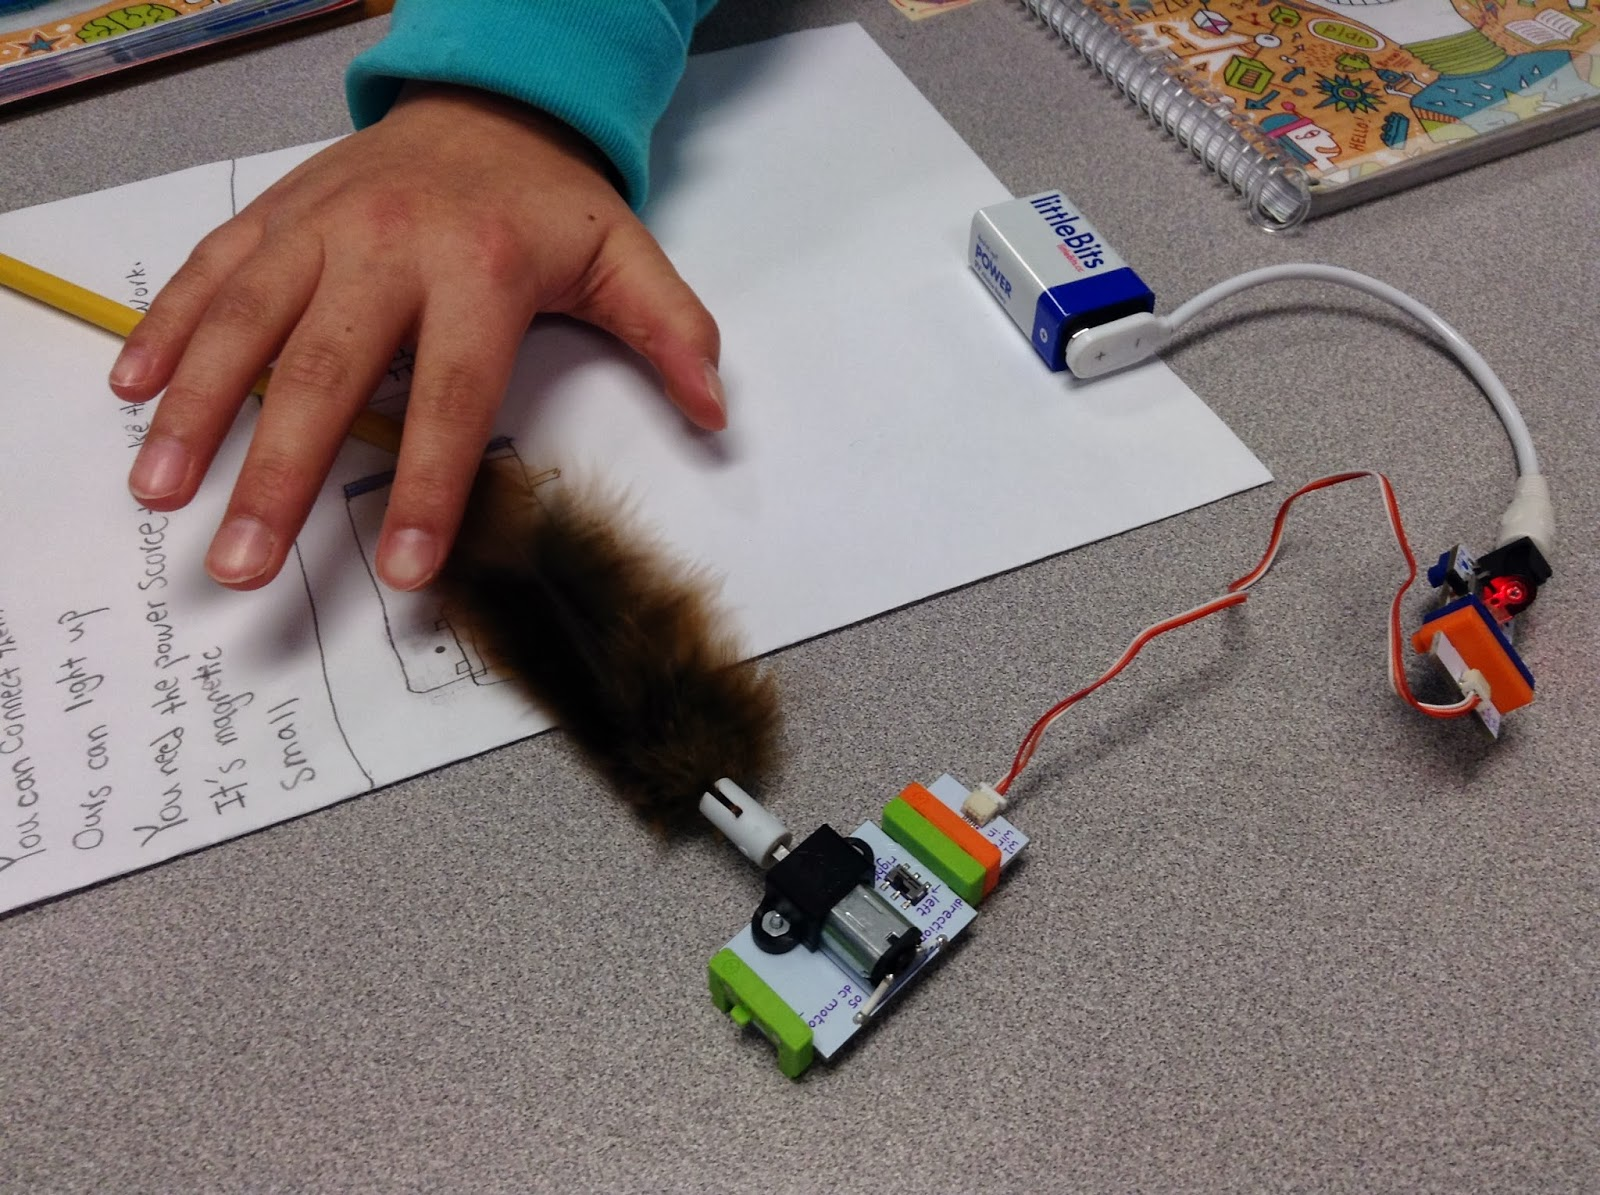 Littlebits Archive Mathematics And Science In Sd38 Richmond Fun Way For Kids To Build Circuits Make Things They Also Began Think About Their Own Projects What Might Like Create With